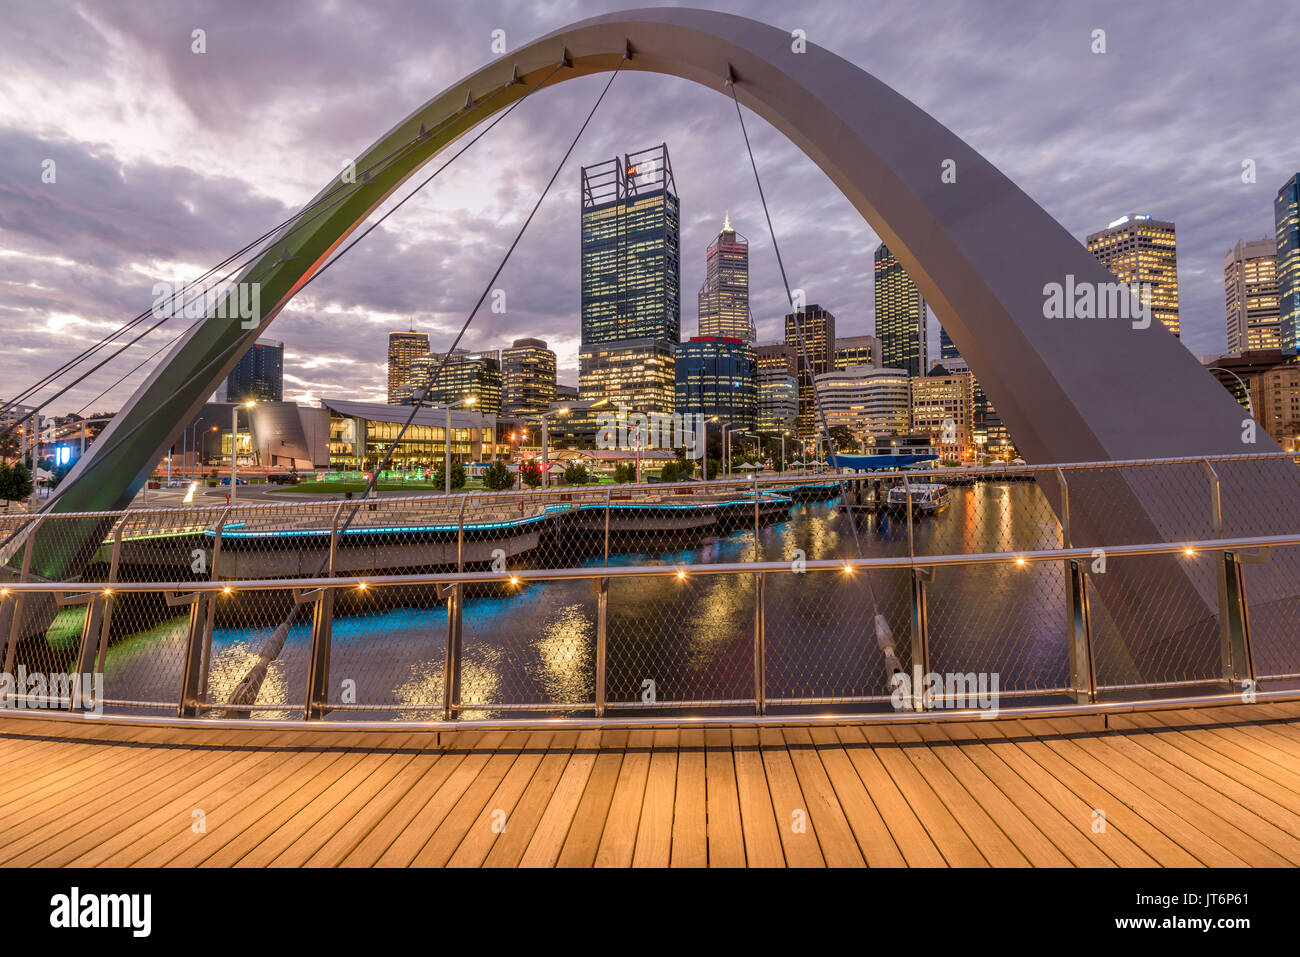 Elizabeth Bridge and Central Business District of Perth, Western Australia at sunsetStock Photo